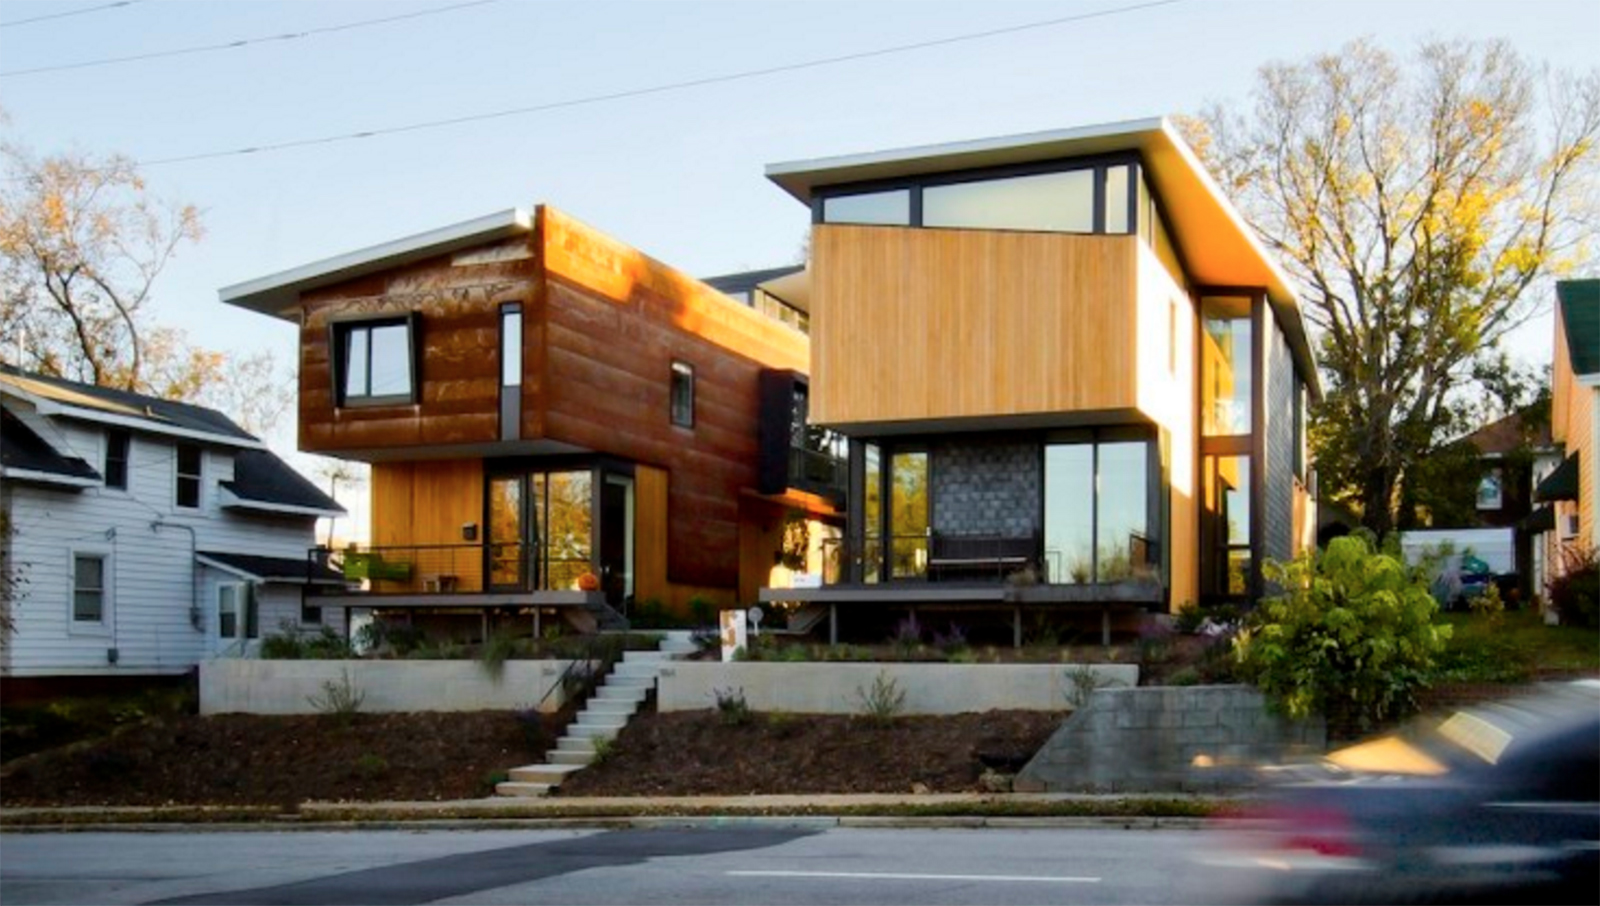 Two Compact Modern Homes Fill Challenging Empty Lots In An Old, Urban  Neighborhood